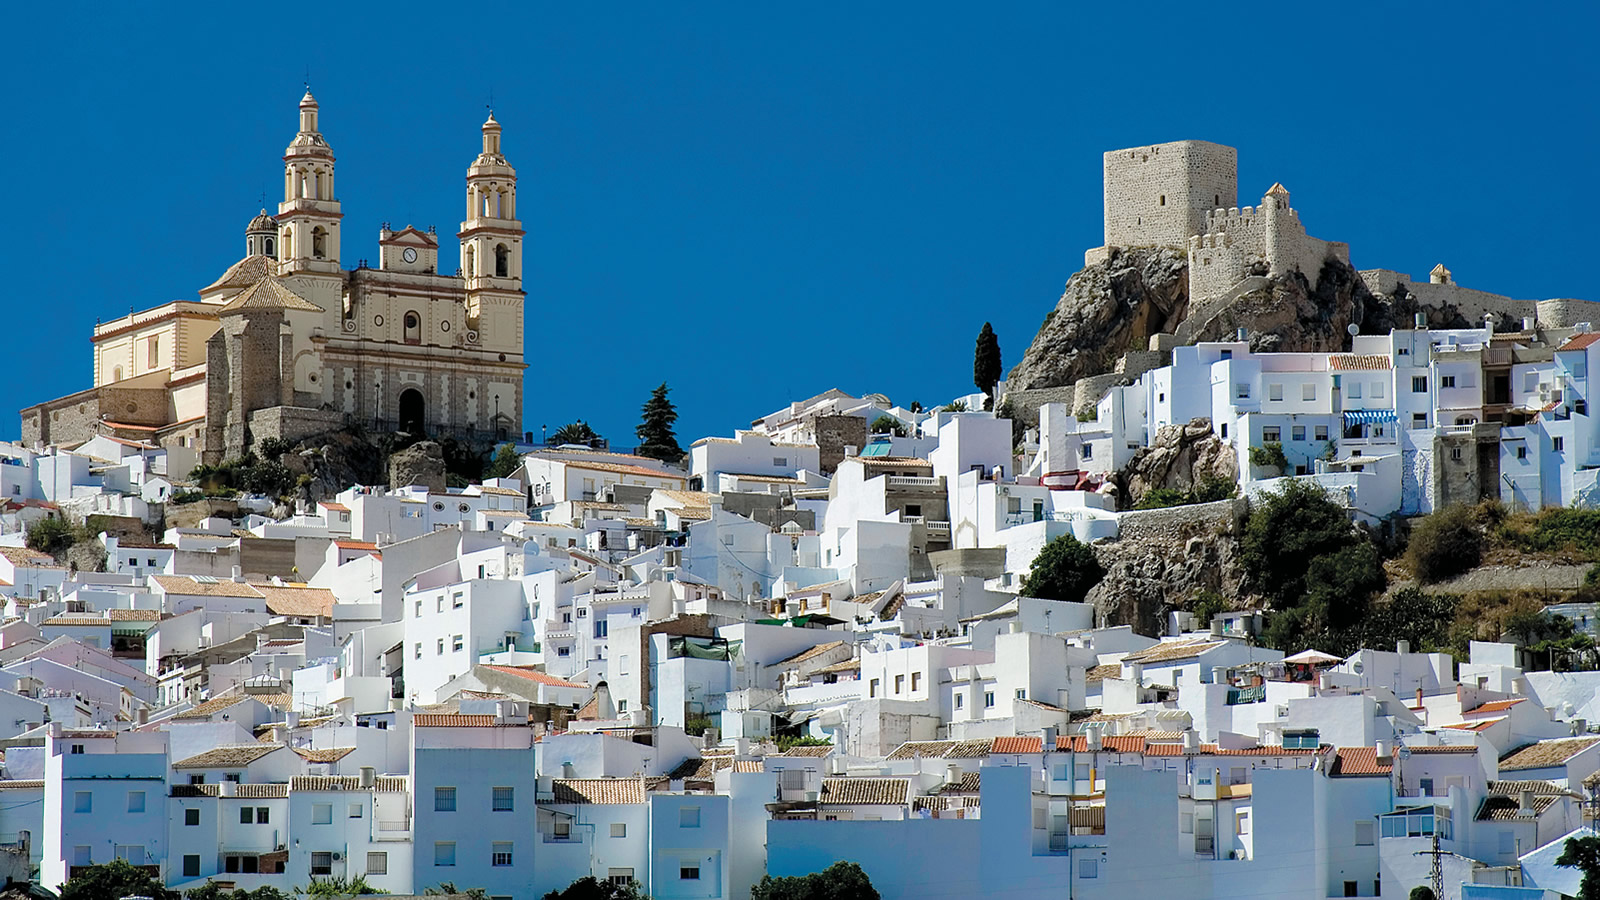 Cathedral, Fort, and White Buildings in Andalucia, Spain